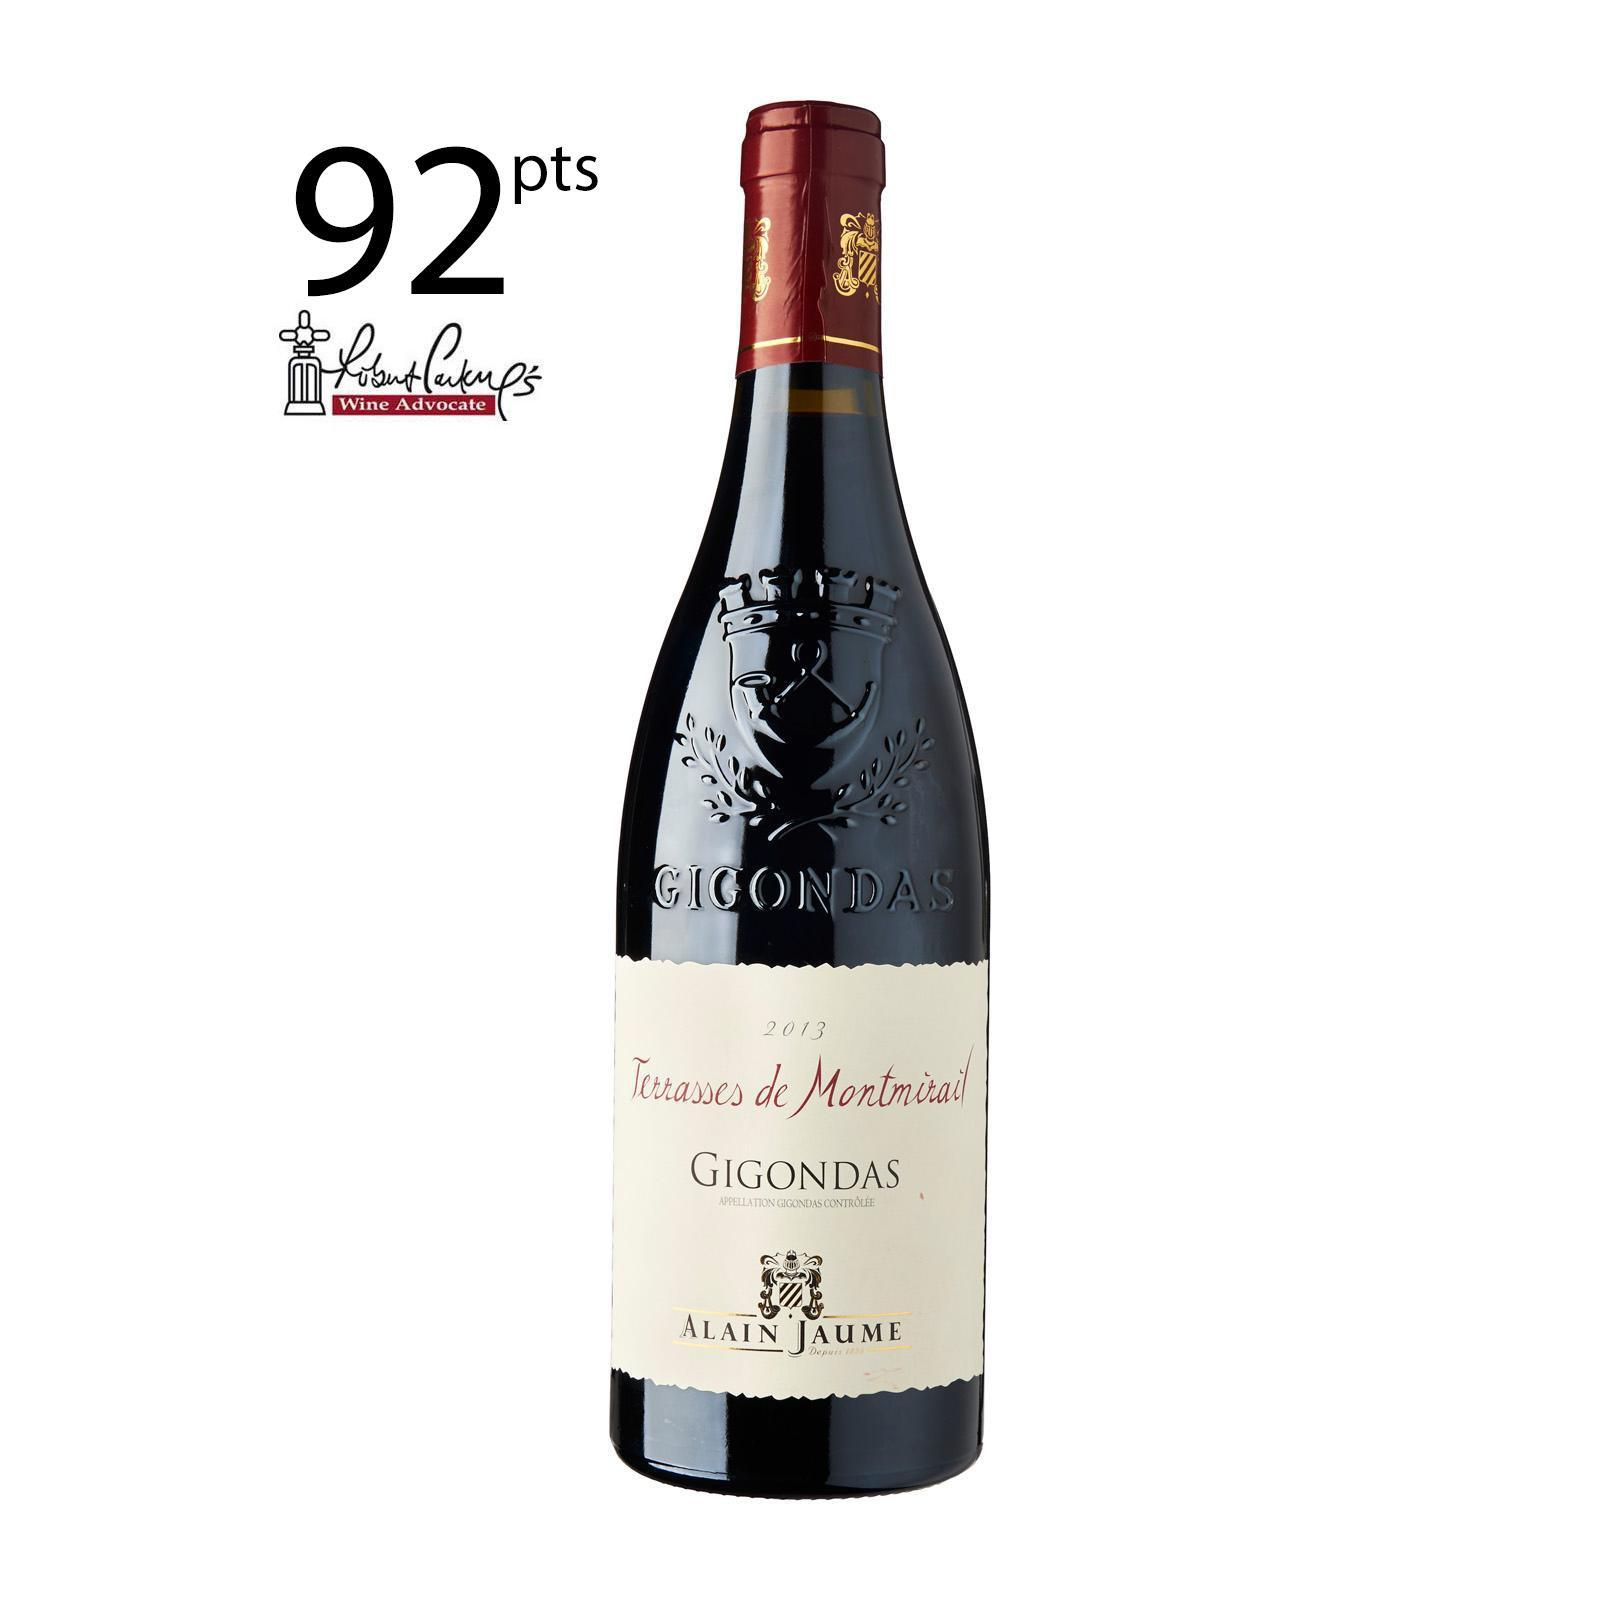 Domaine Grand Veneur Alain Jaume - Gigondas Terrasses de Montmirail 2015 - 750 ml - By The Vintage Wine Club